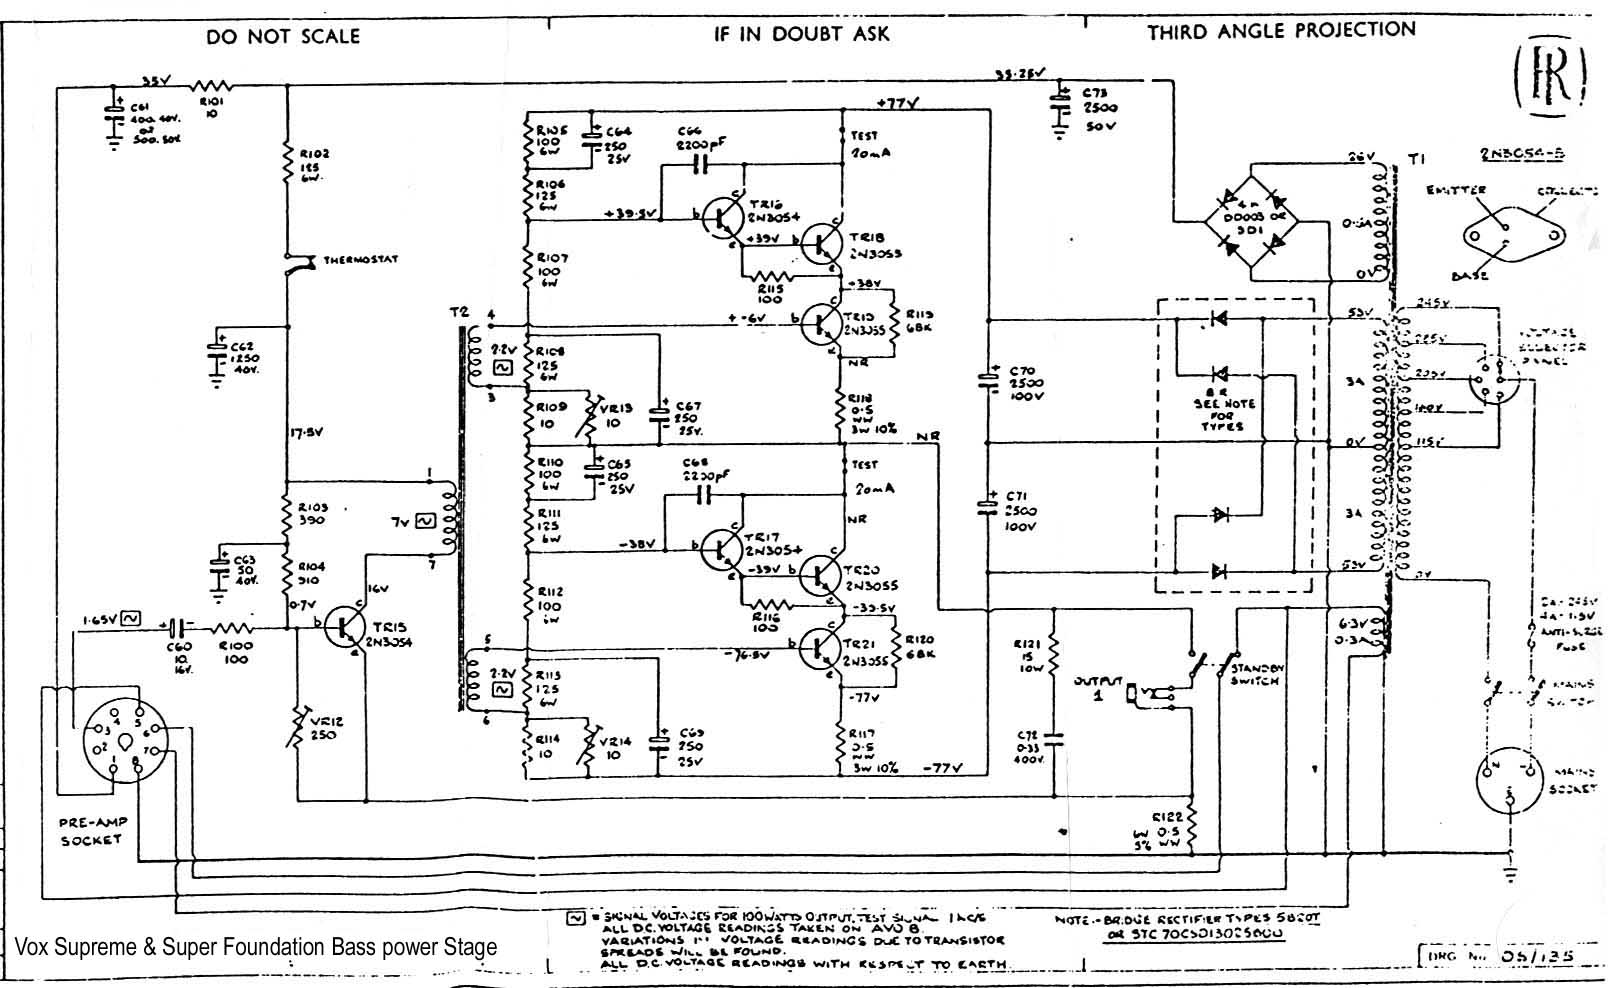 vox vintage circuit diagrams guitar amplifier repair watt 1969, [ download diagram ]